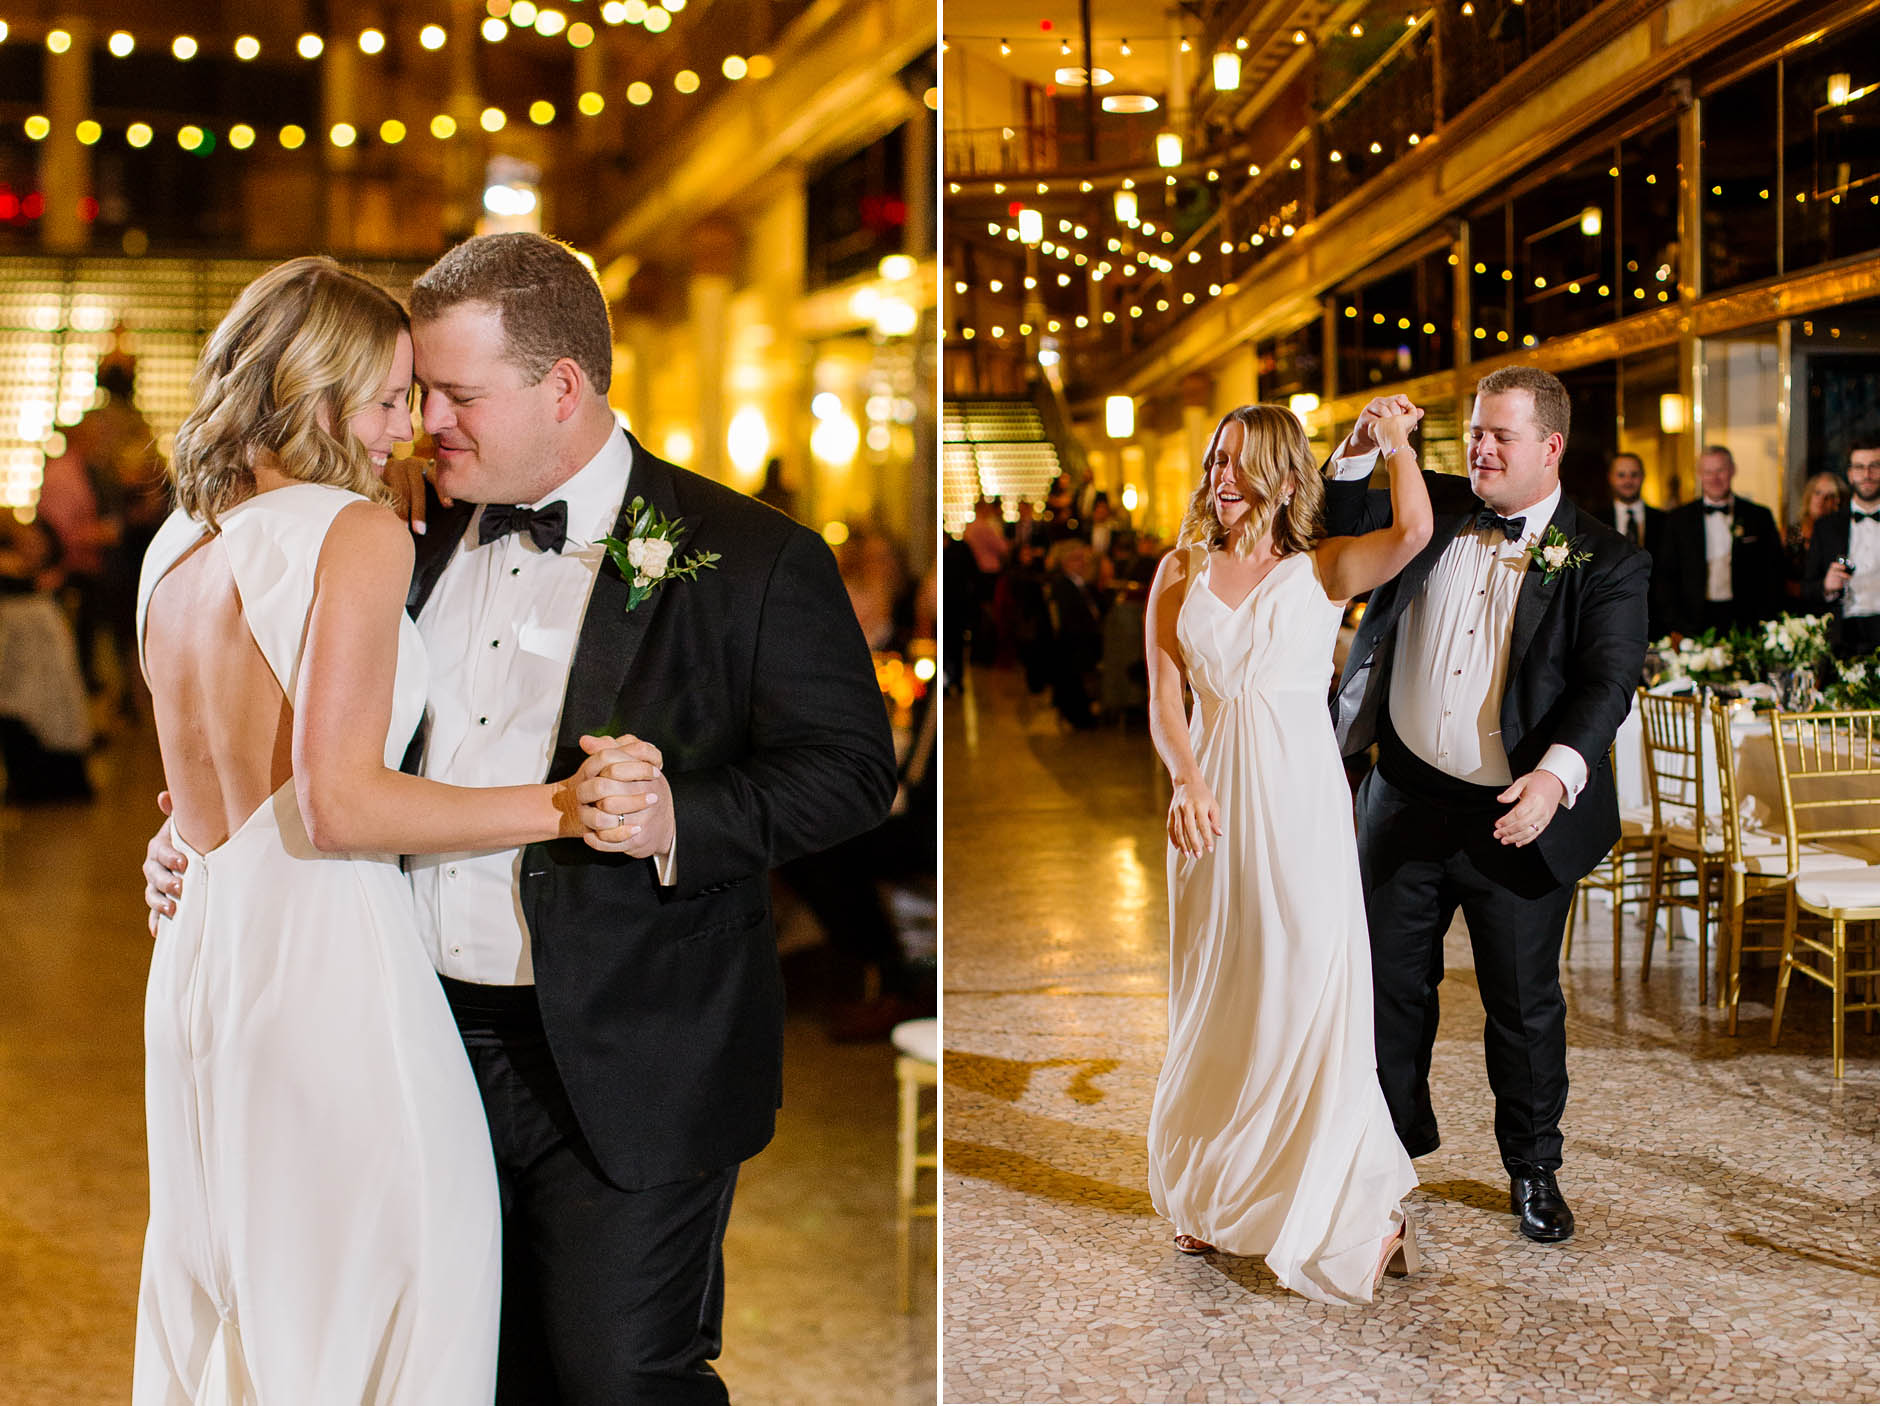 Hyatt Arcade wedding with Jen & Matt.